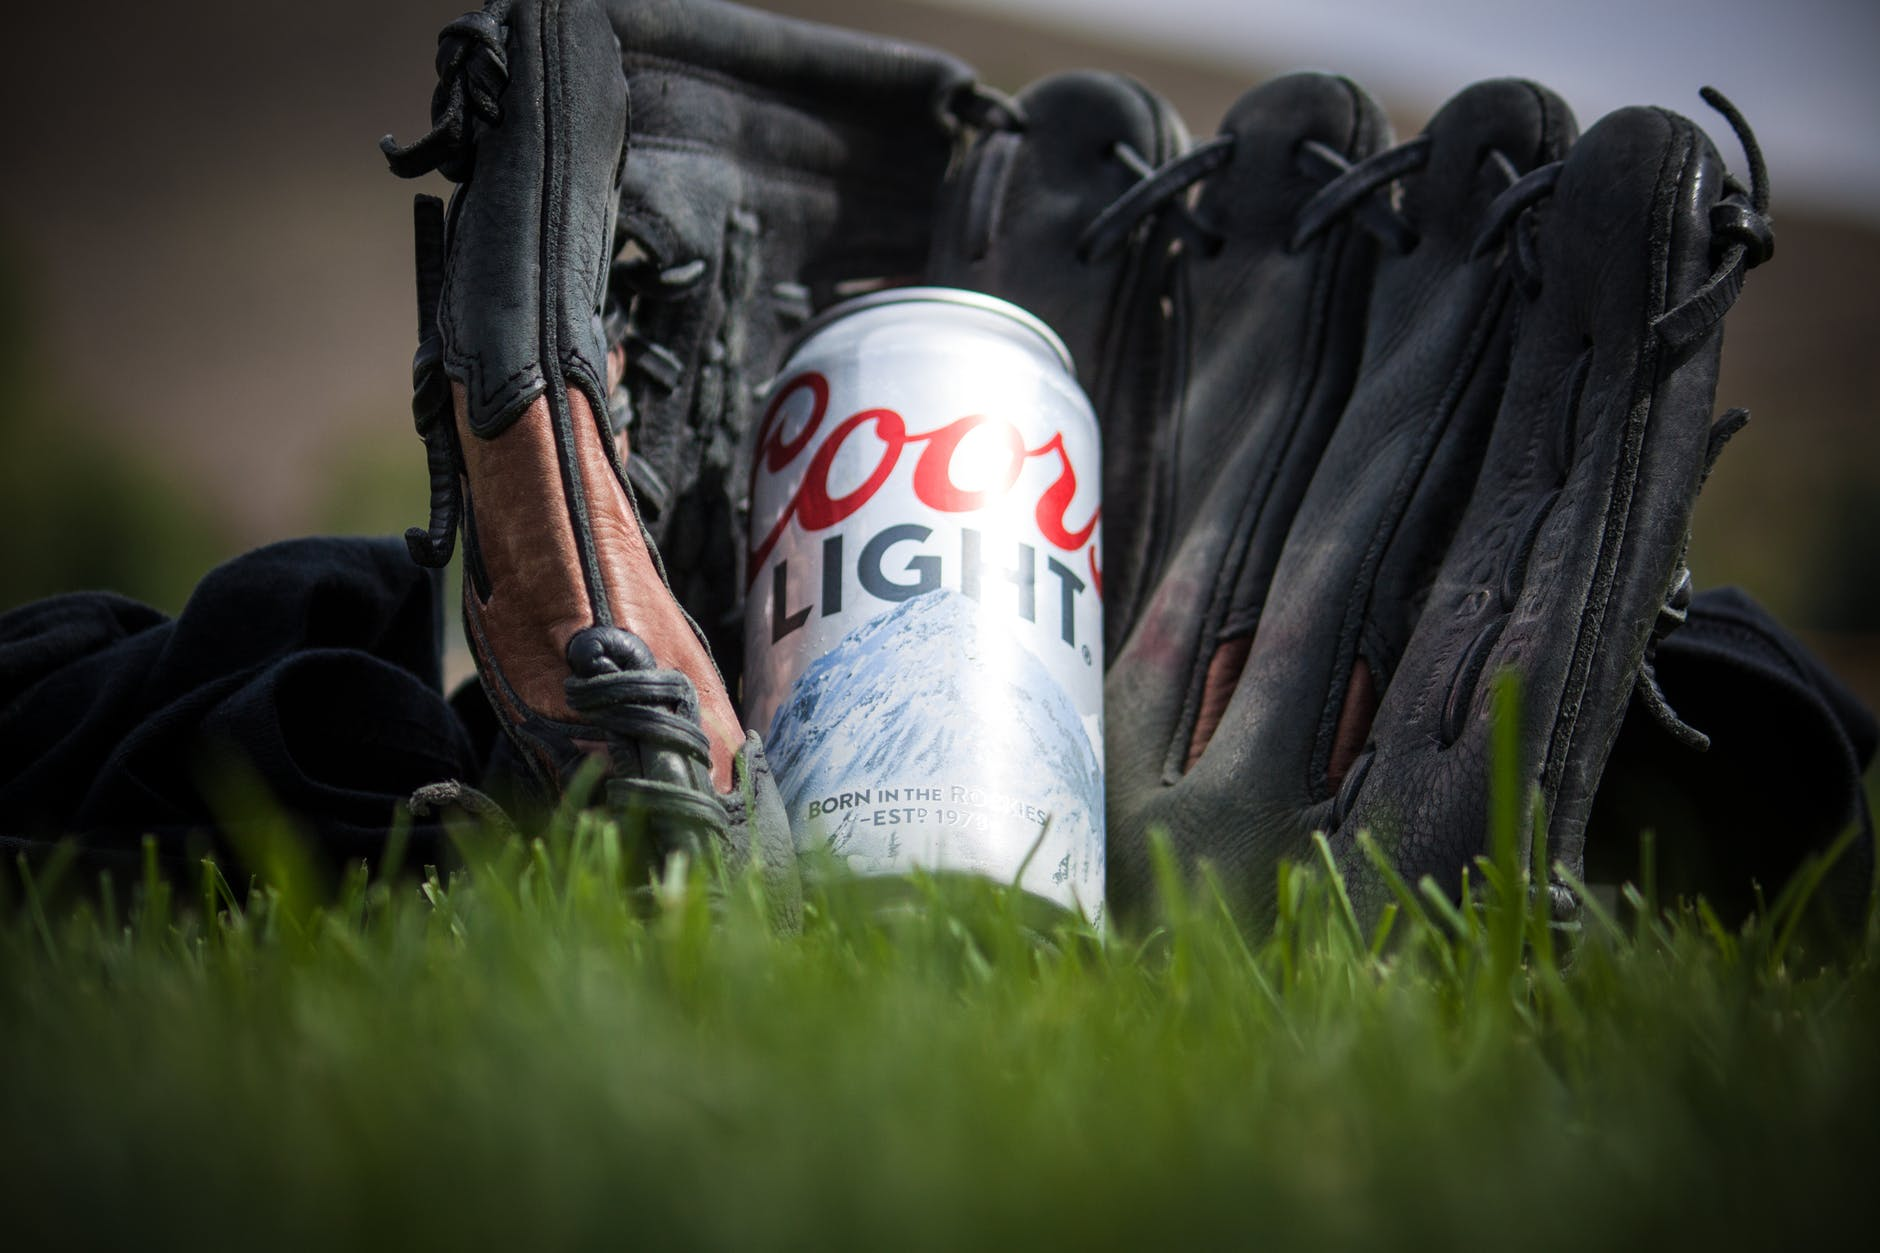 close up photography of coors light beer near black baseball mitts